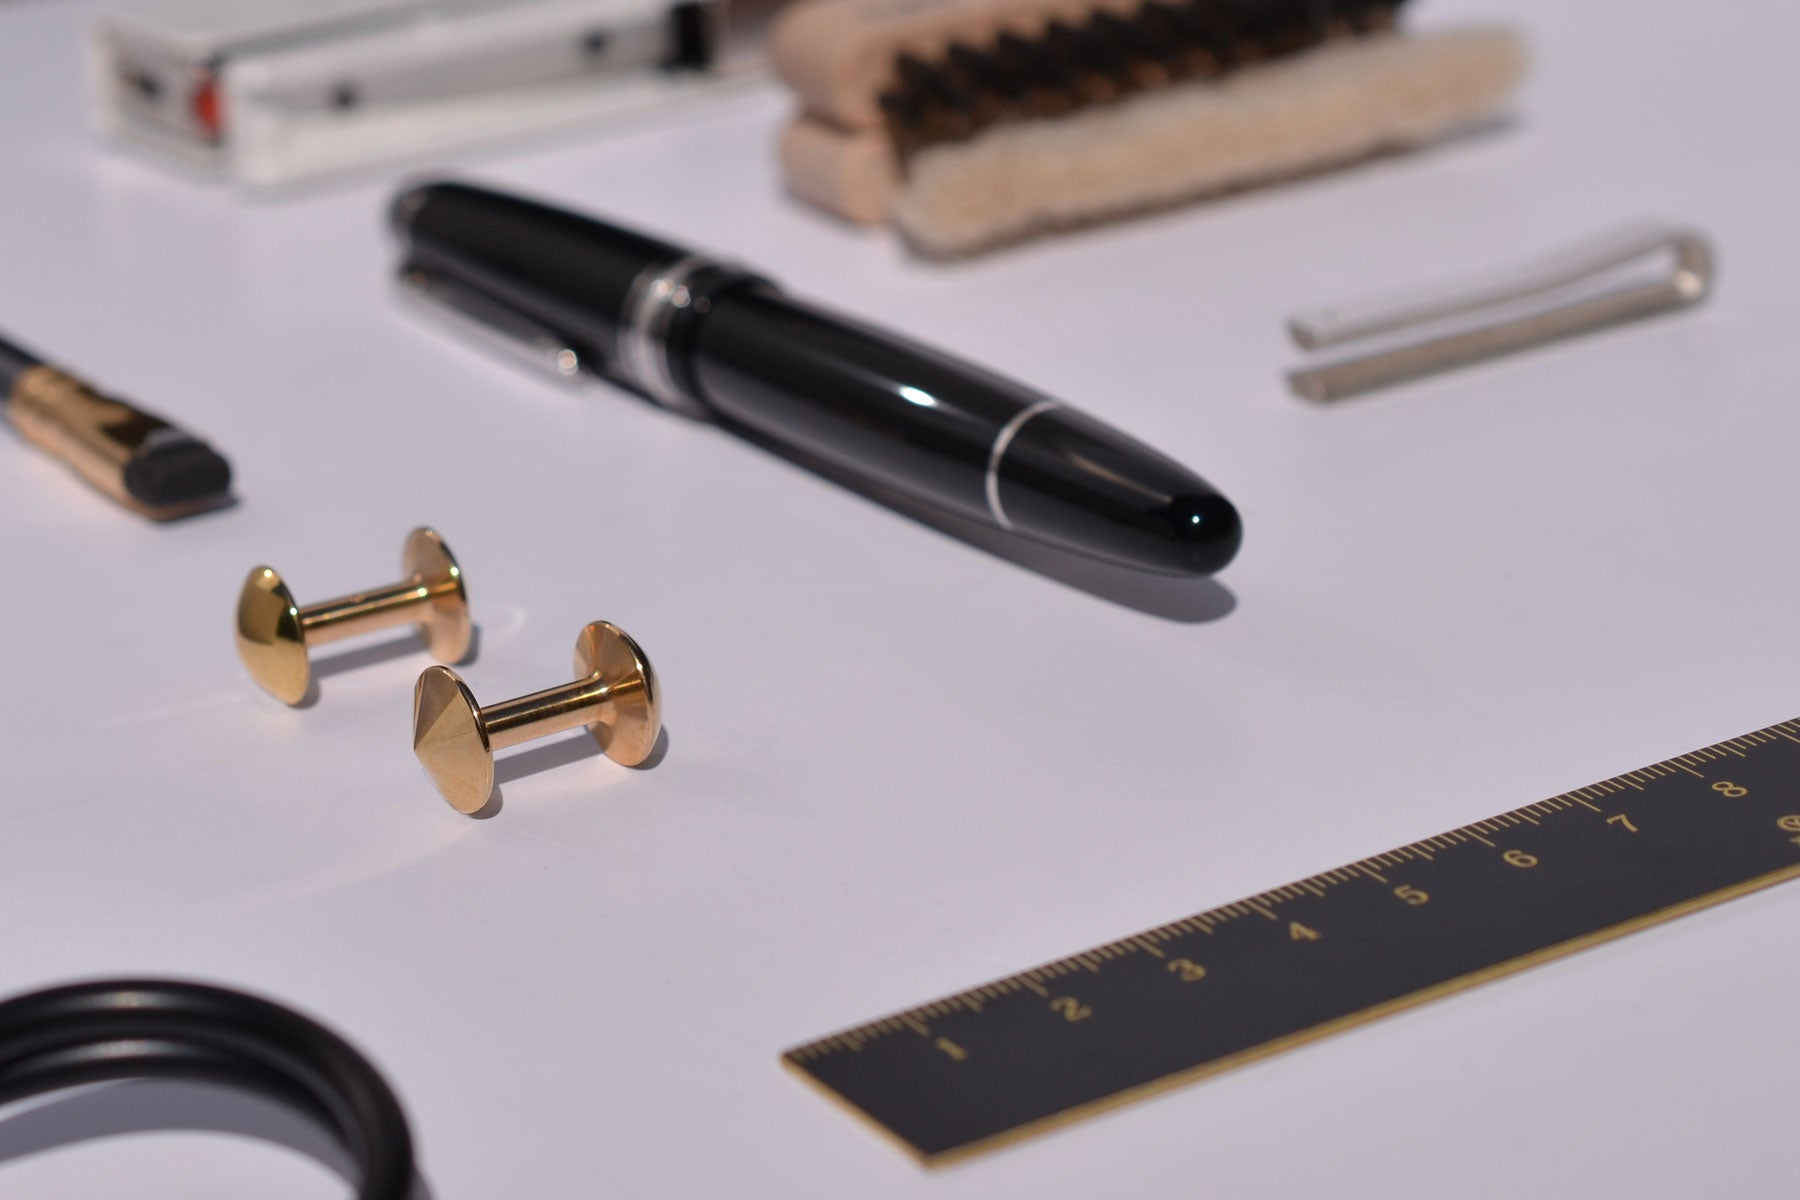 Refined and precise stationary | Alice Made This